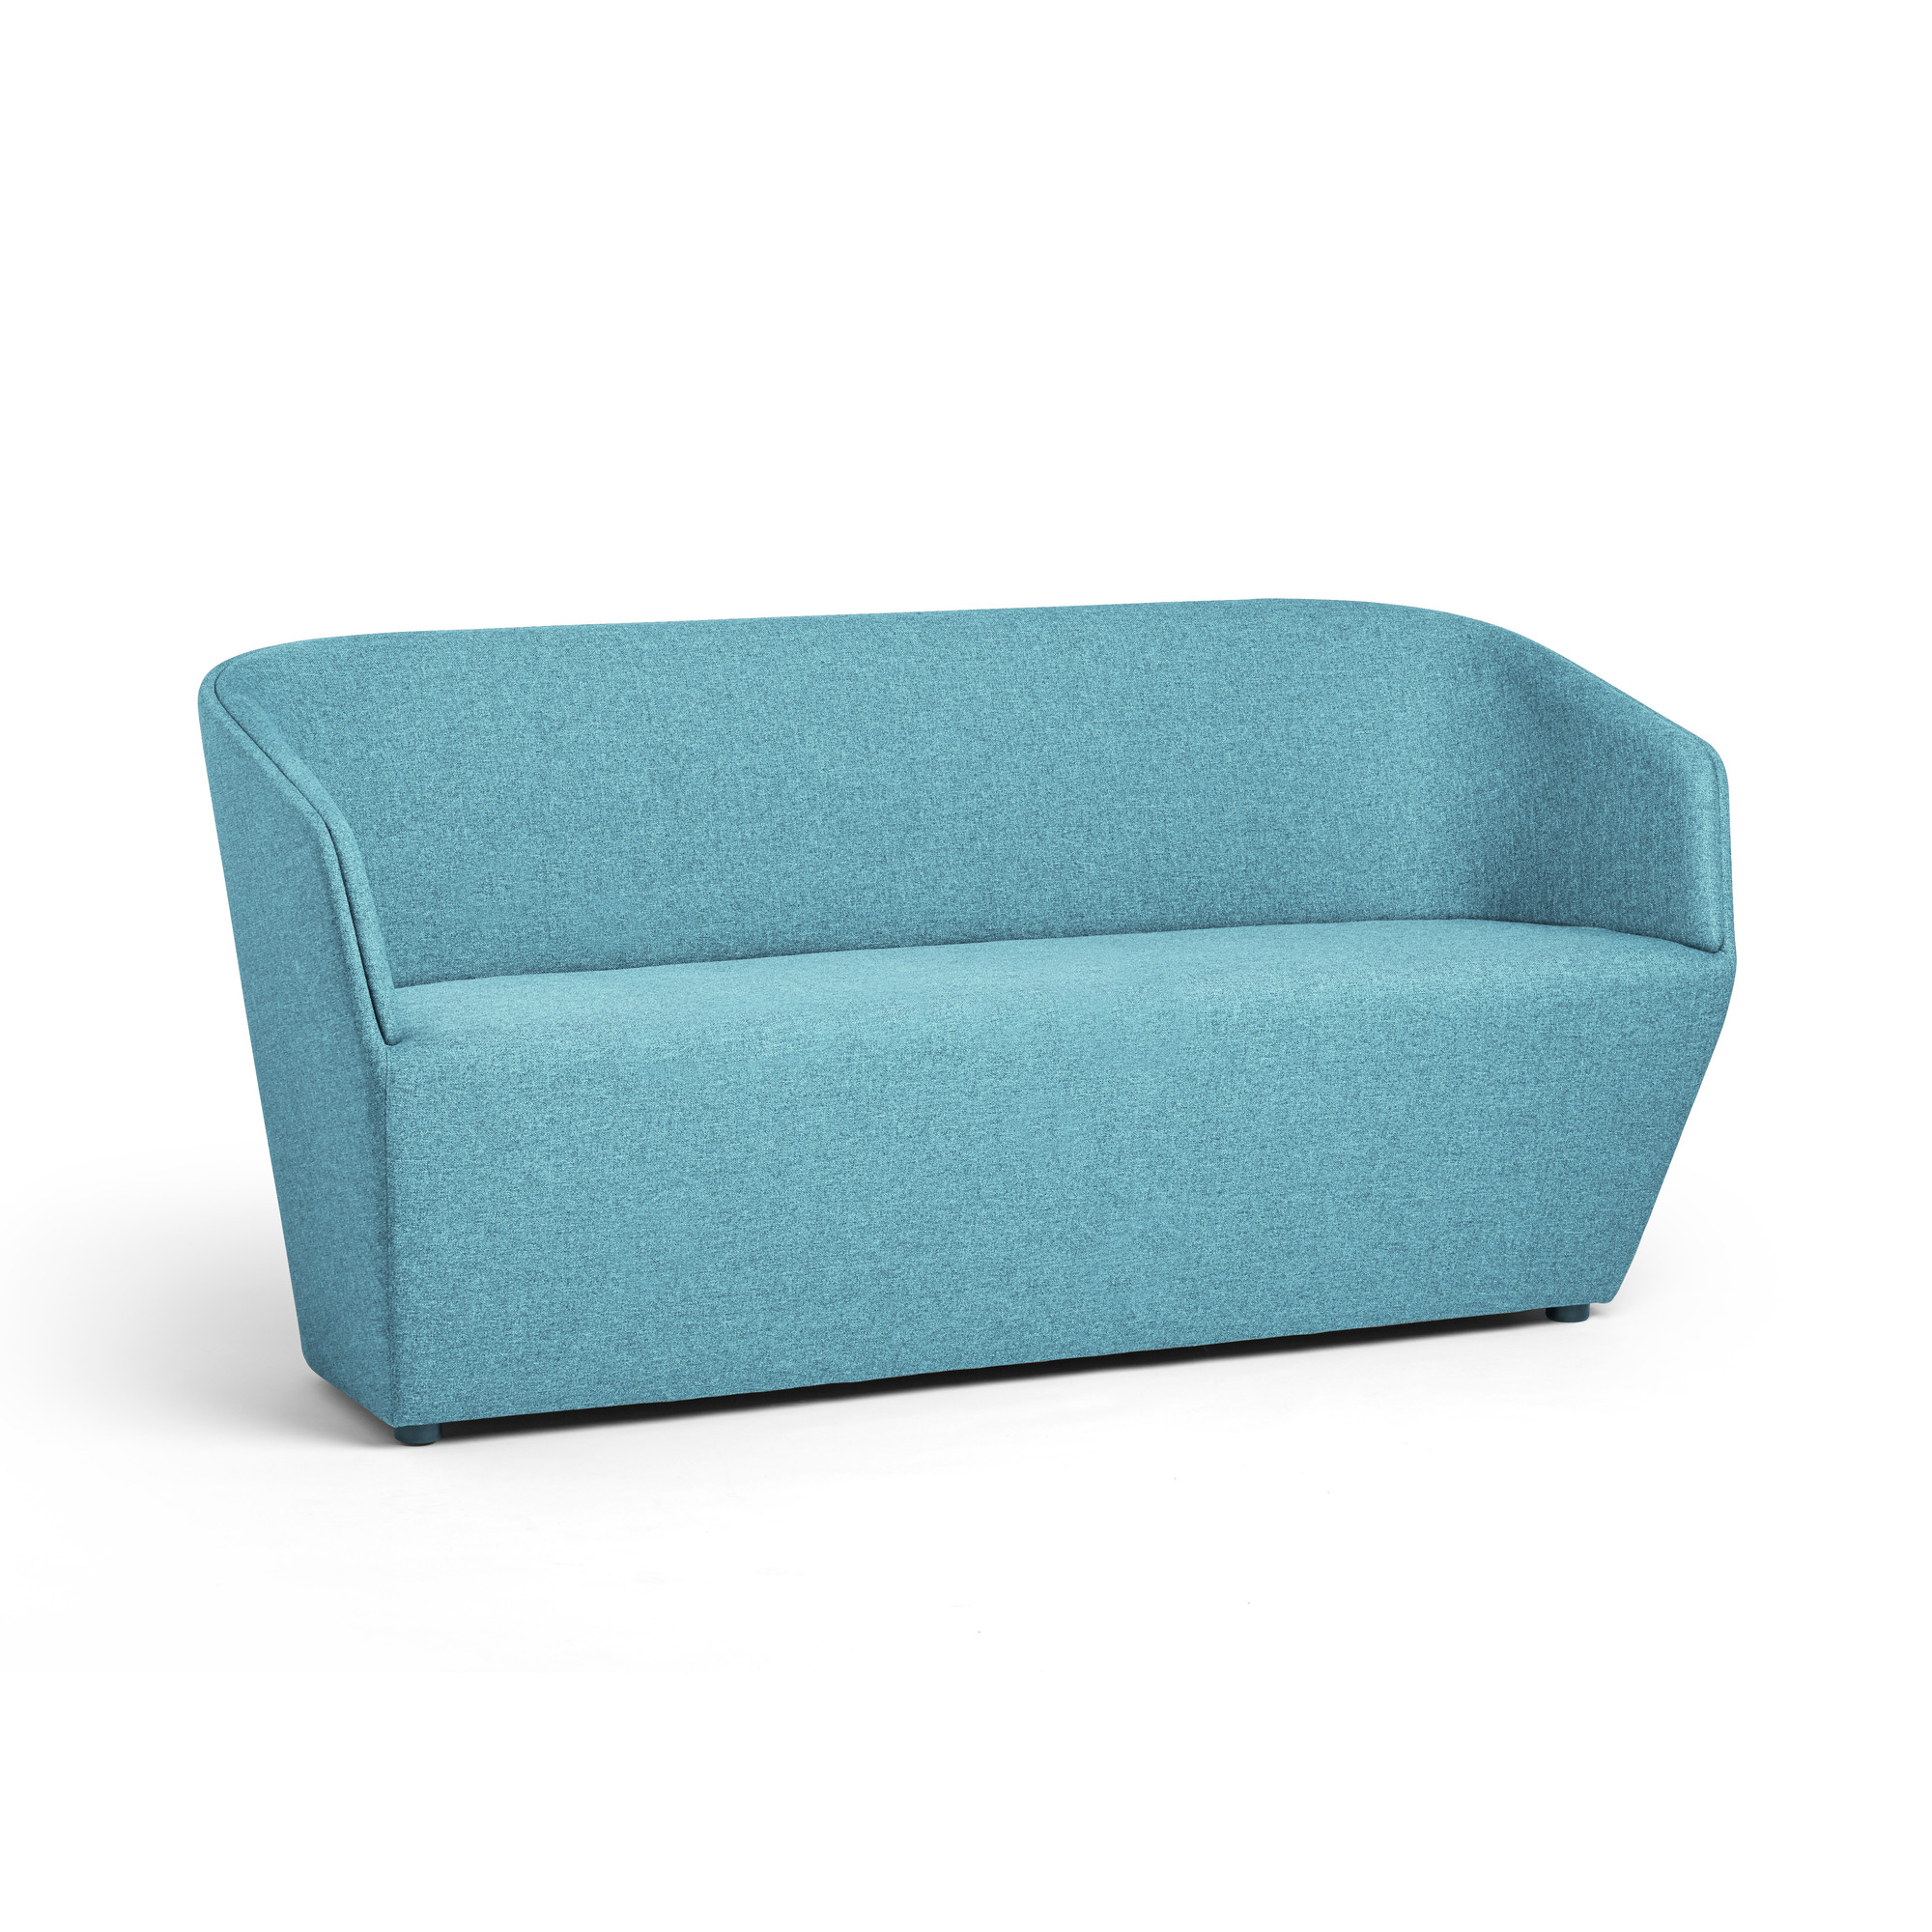 couch of lounge chairs bedrooms chaise couches inexpensive modern narrow for ideas furniture